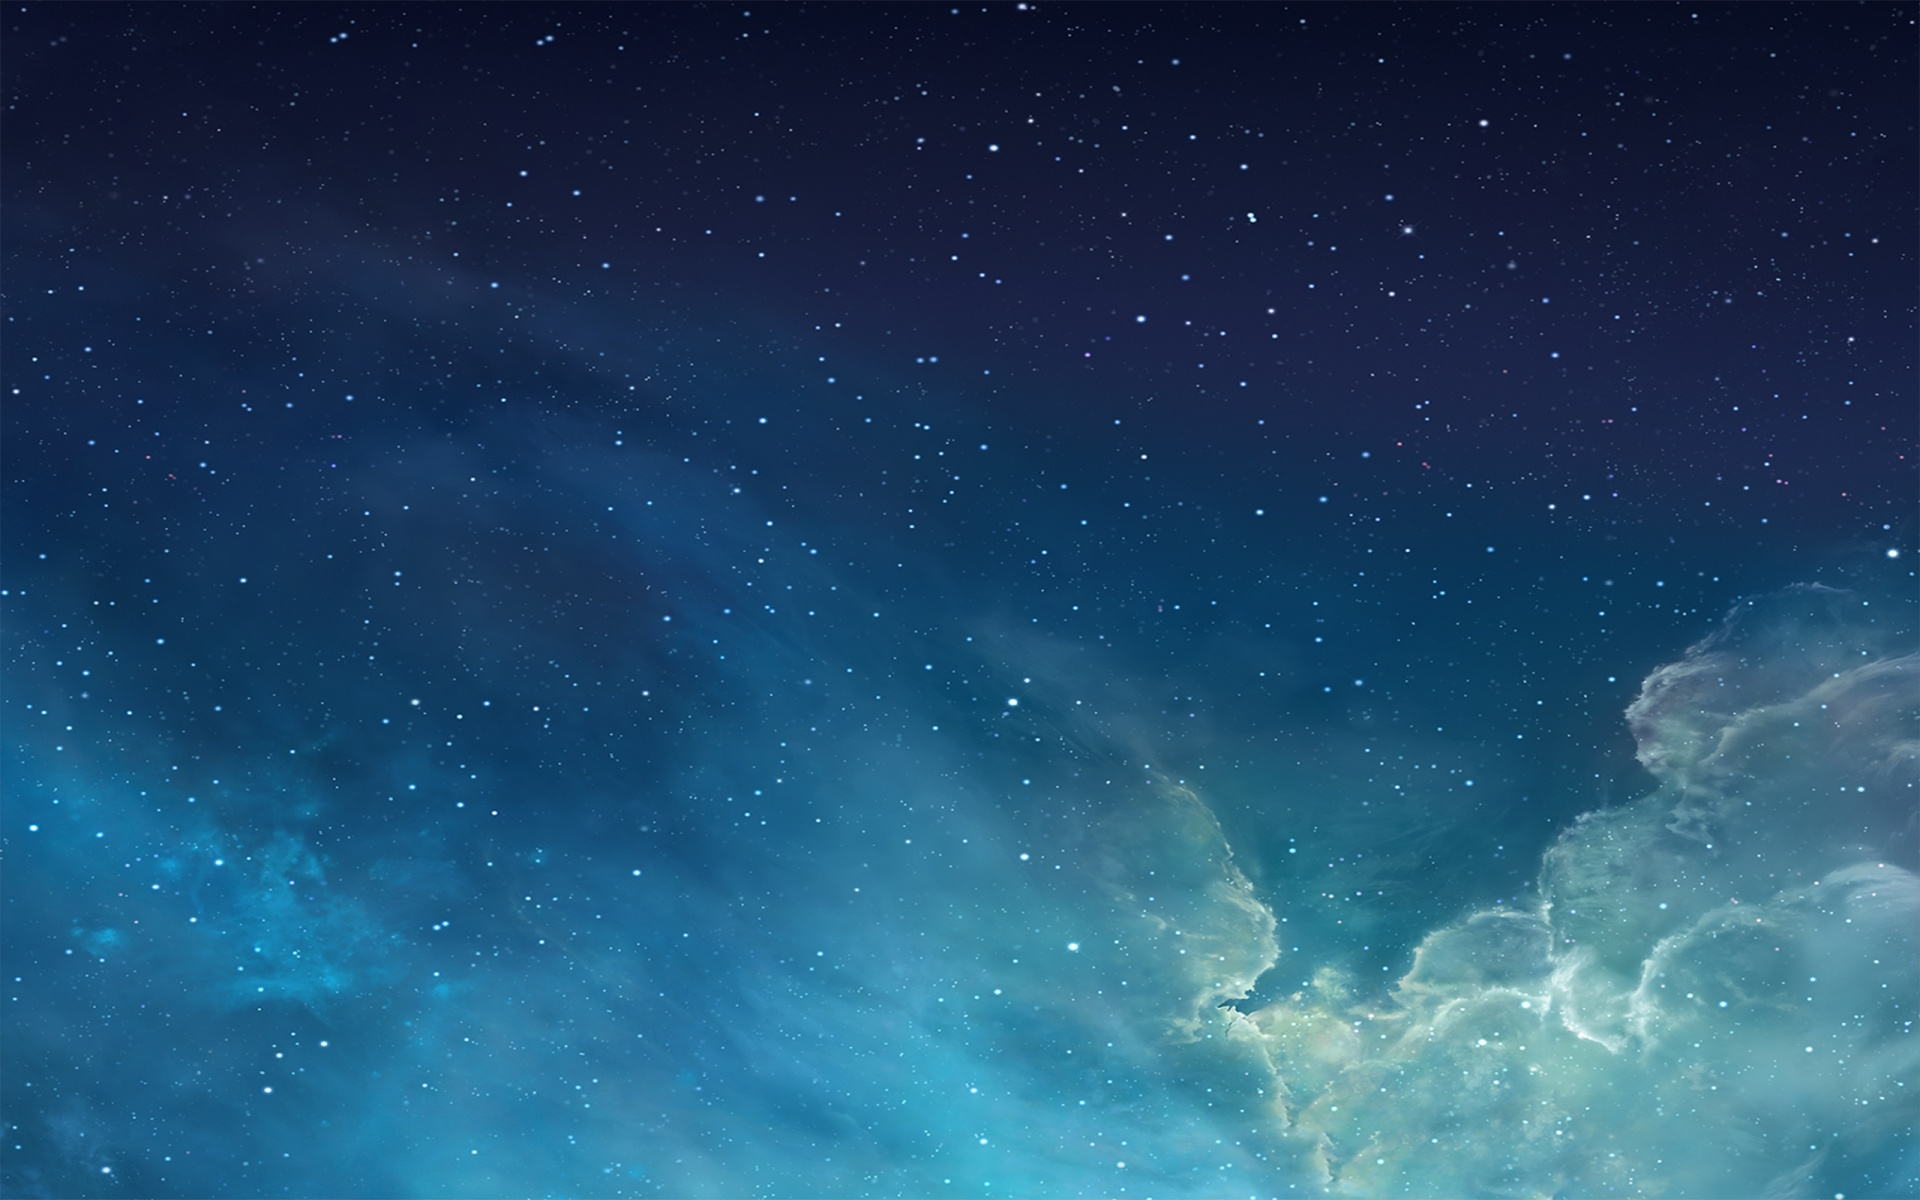 iOS 7 Galaxy Wallpapers HD Wallpapers 1920x1200